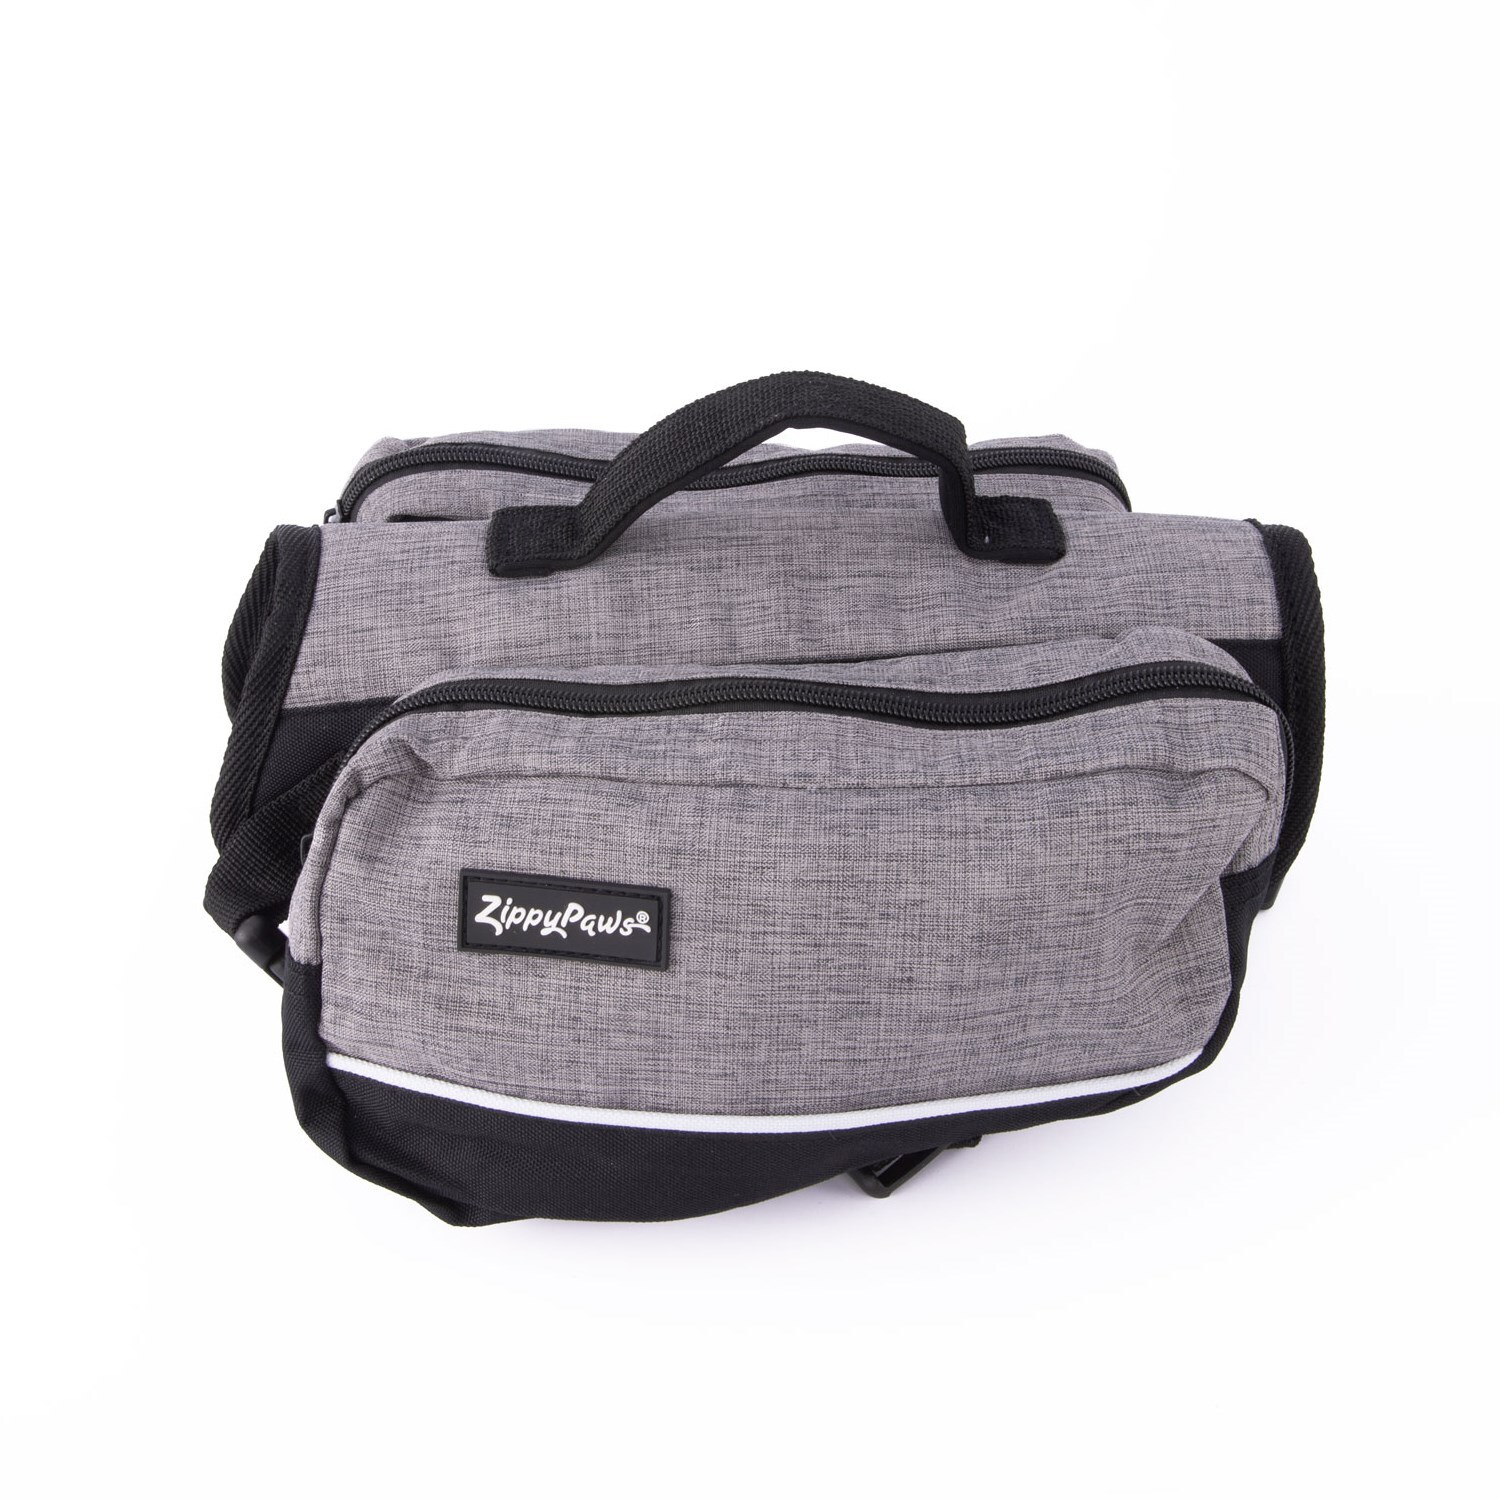 Zippy Paws Dog Backpack in Graphite Grey image 0